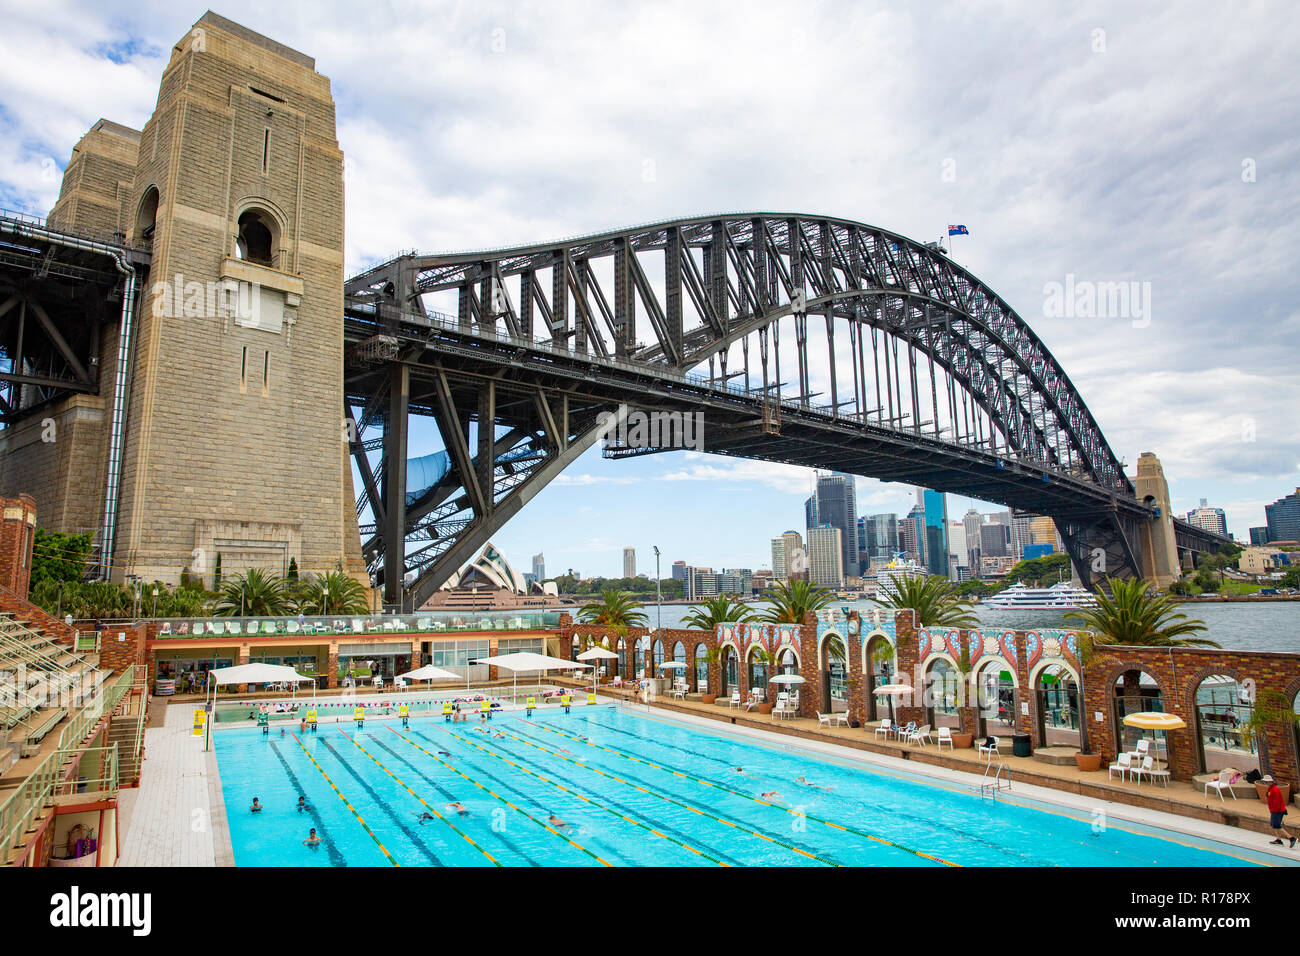 North Sydney Olympic swimming pool in Milsons point and the Sydney Harbour Bridge,Australia Stock Photo